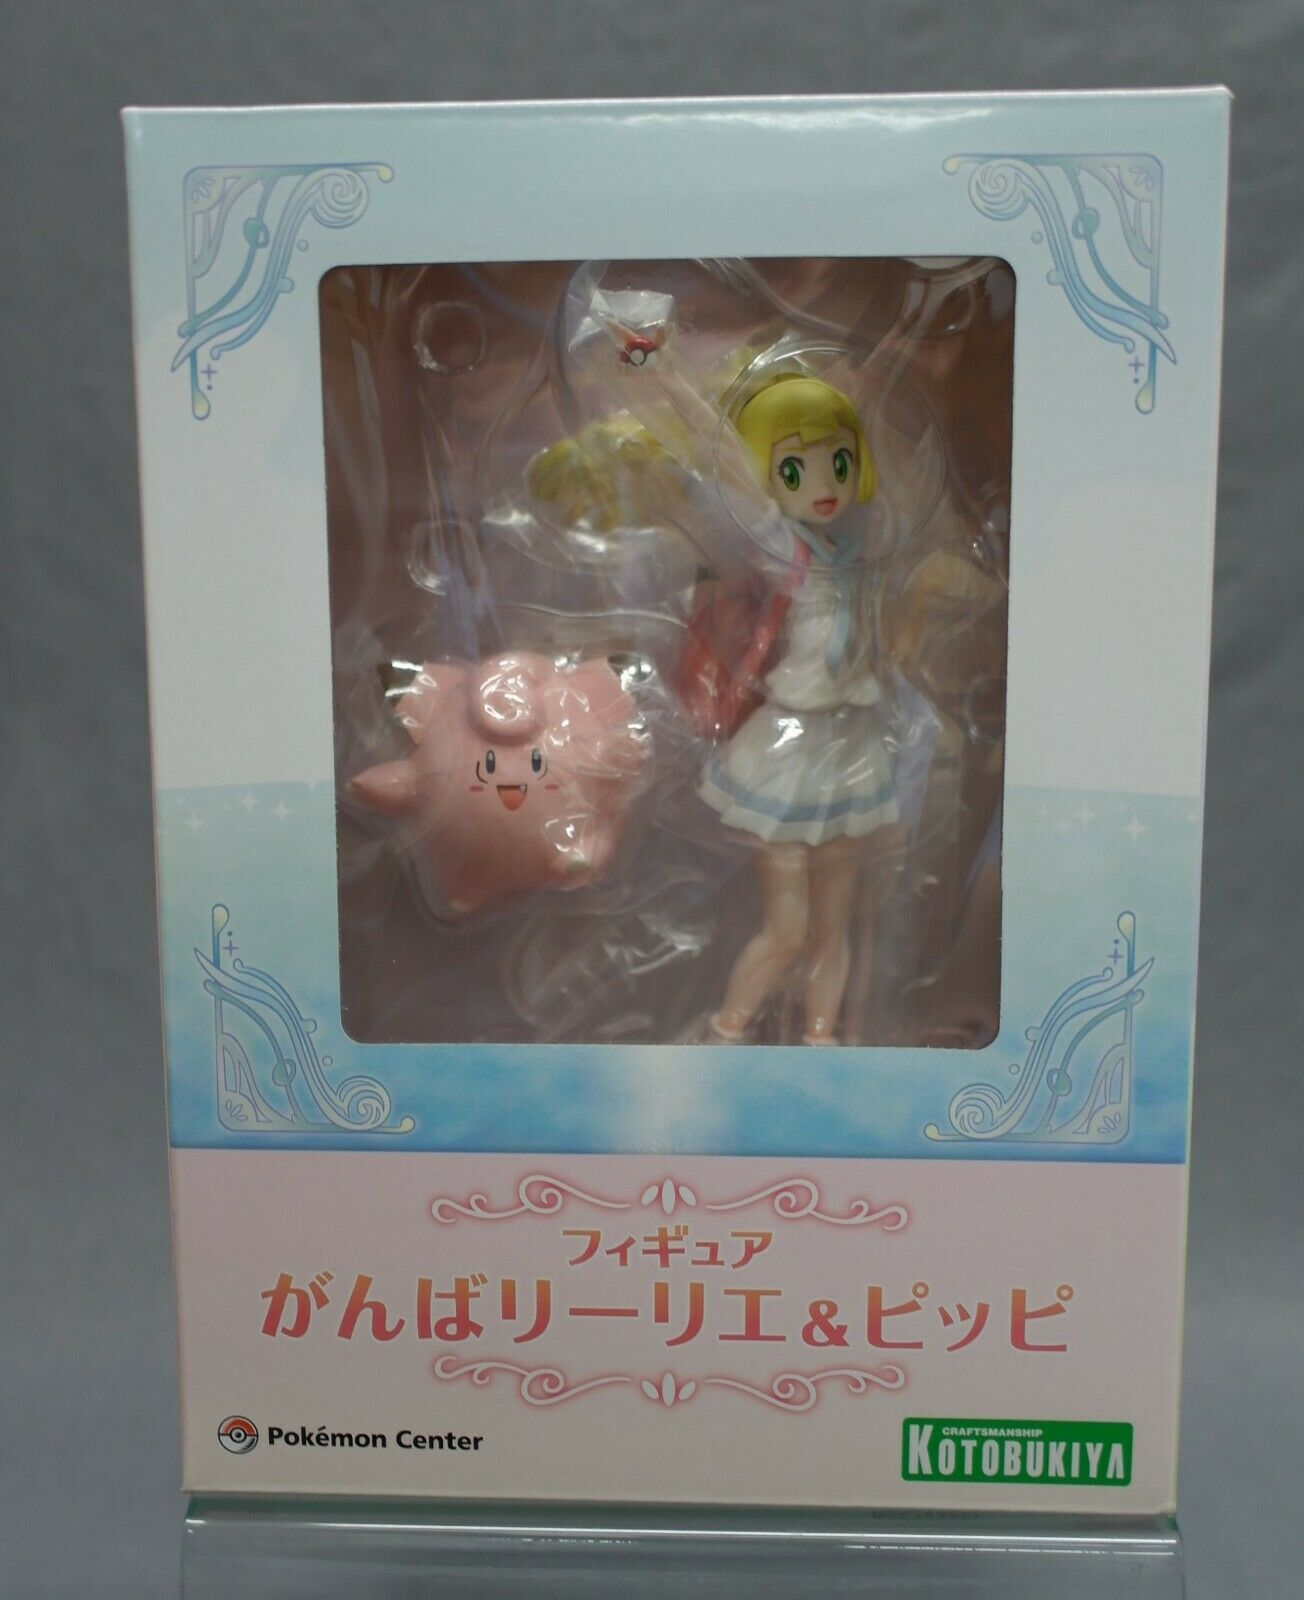 Pokemon Center Gamba Lillie & CLEFAIRY 1 8 Kotobukiya Limited Edition new Japan